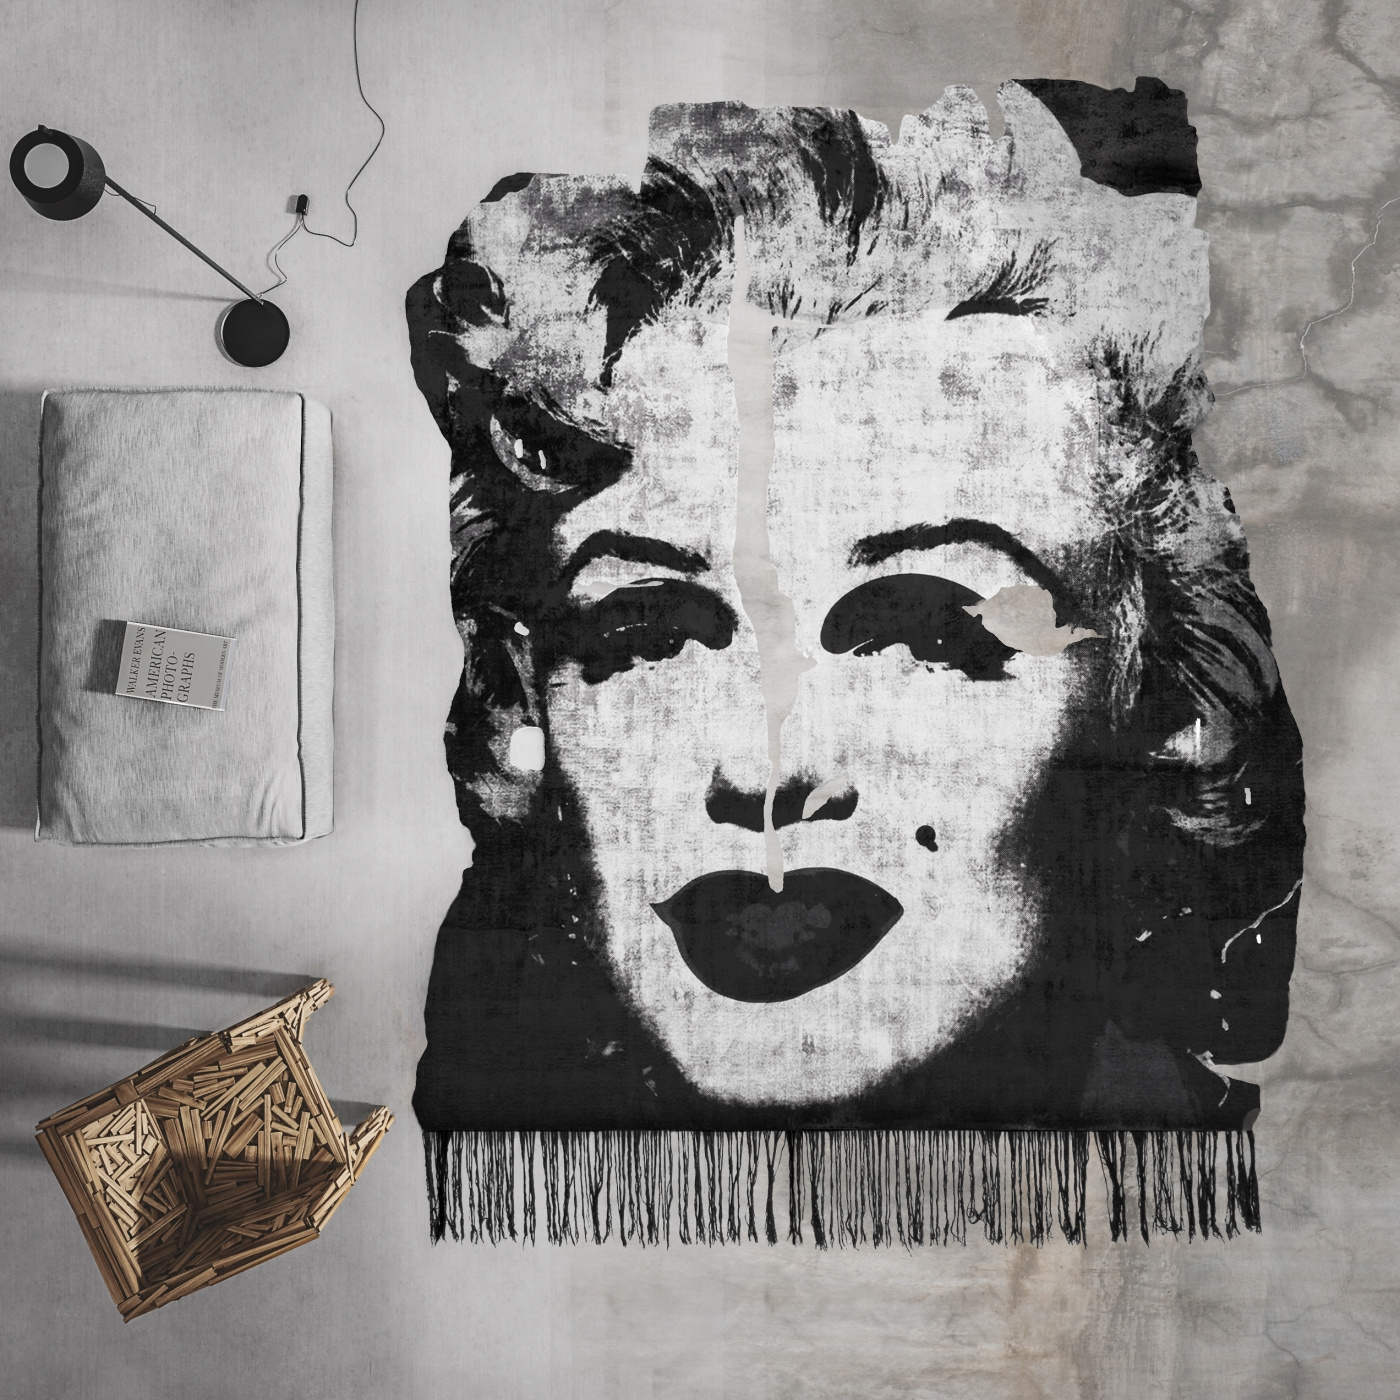 ​HENZEL STUDIO x ANDY WARHOL MARILYN - KALIX NIGHT BY CALLE HENZEL